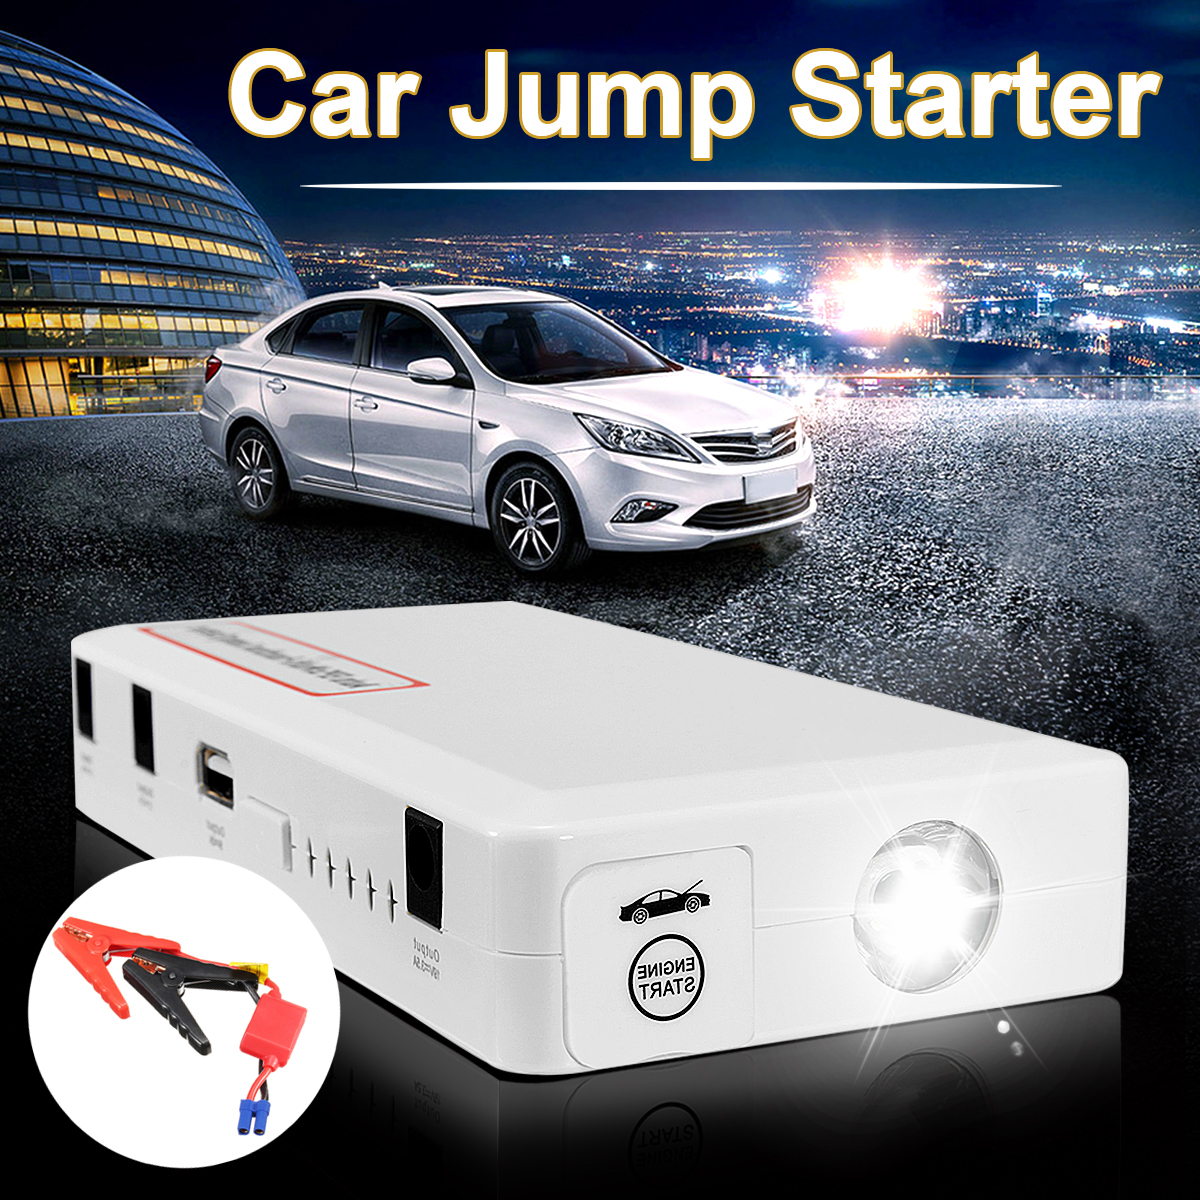 30000mAh 2 USB Portable Car Jump Starter Vehicle Emergency Power Bank Multifunction Car Battery Booster Charger Starting Devices practical 89800mah 12v 4usb car battery charger starting car jump starter booster power bank tool kit for auto starting device